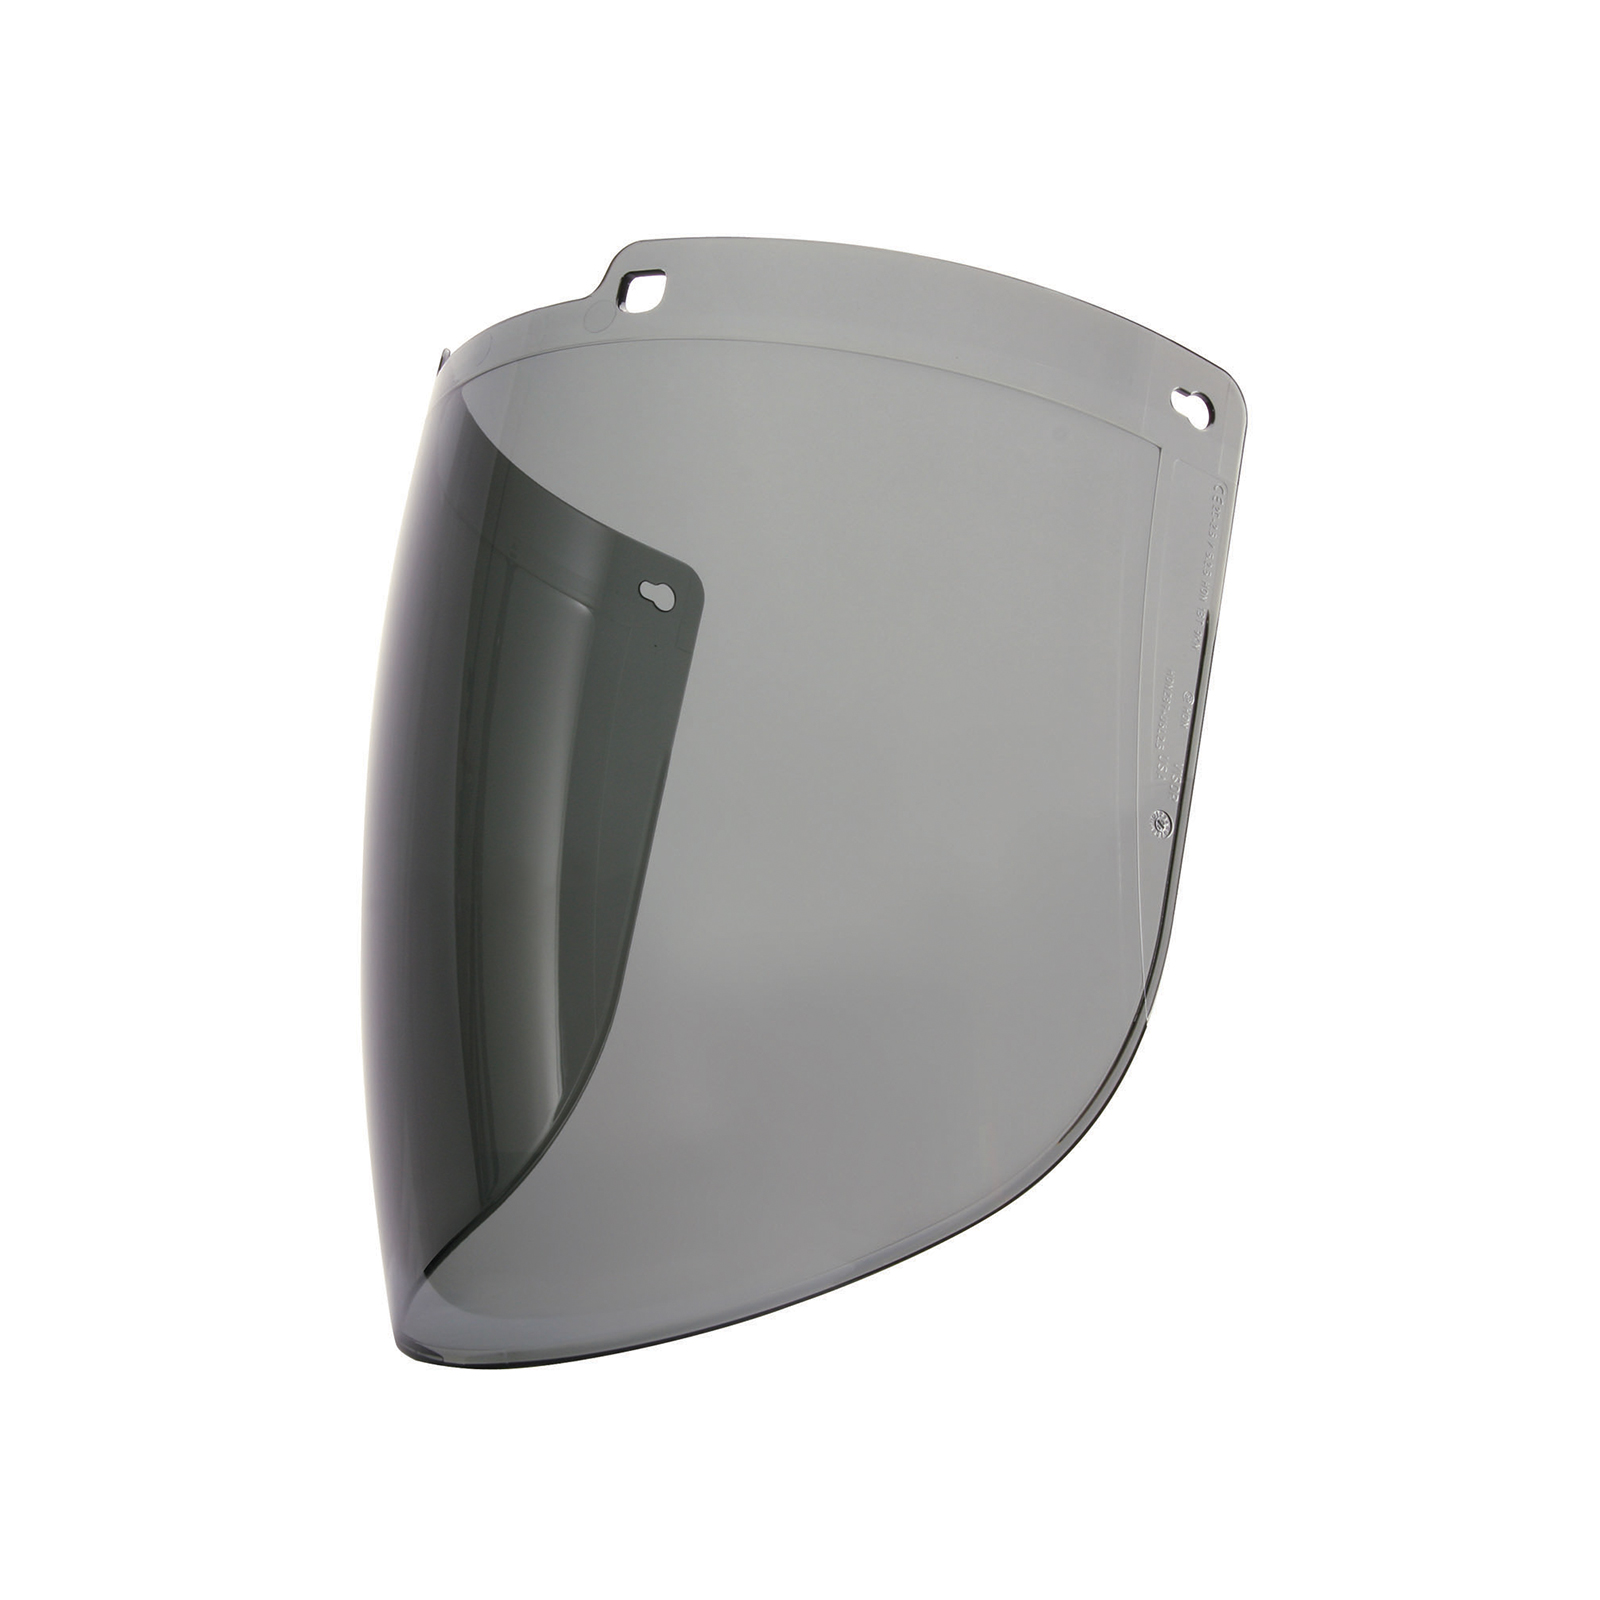 uvex_turboshield_visor_gray_s9570_s9575-45-Securovision